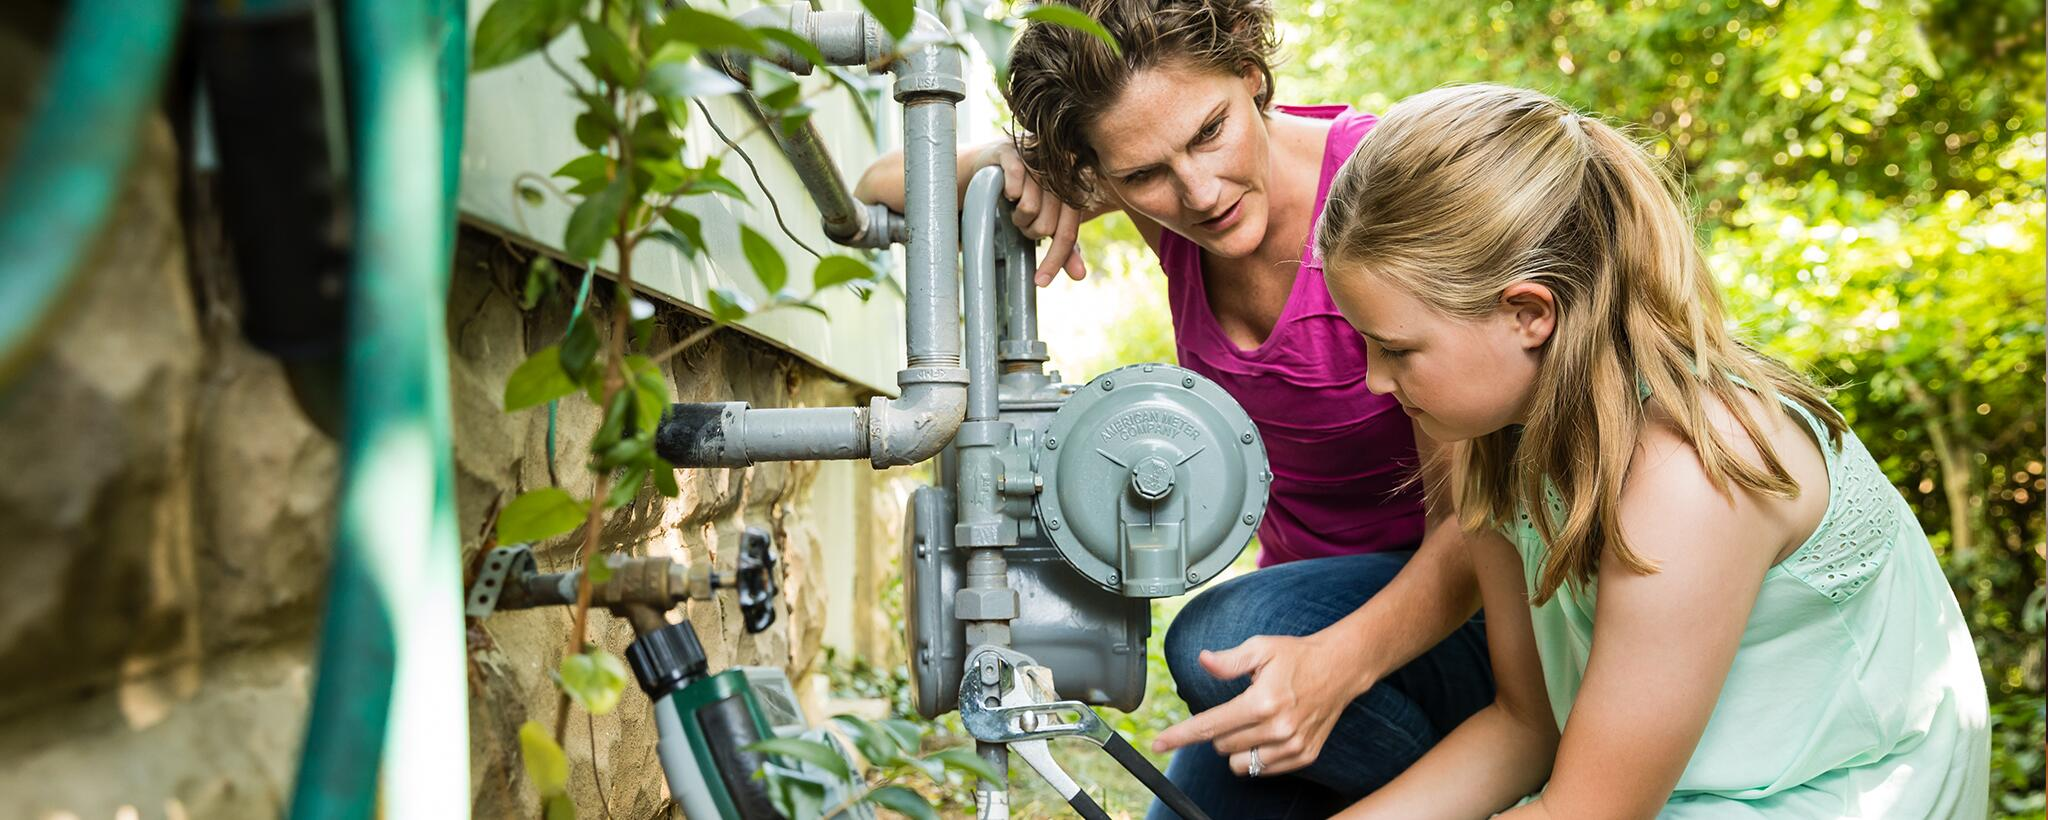 A mother teaches her school-age daughter how to turn off utilities for the house with a wrench.